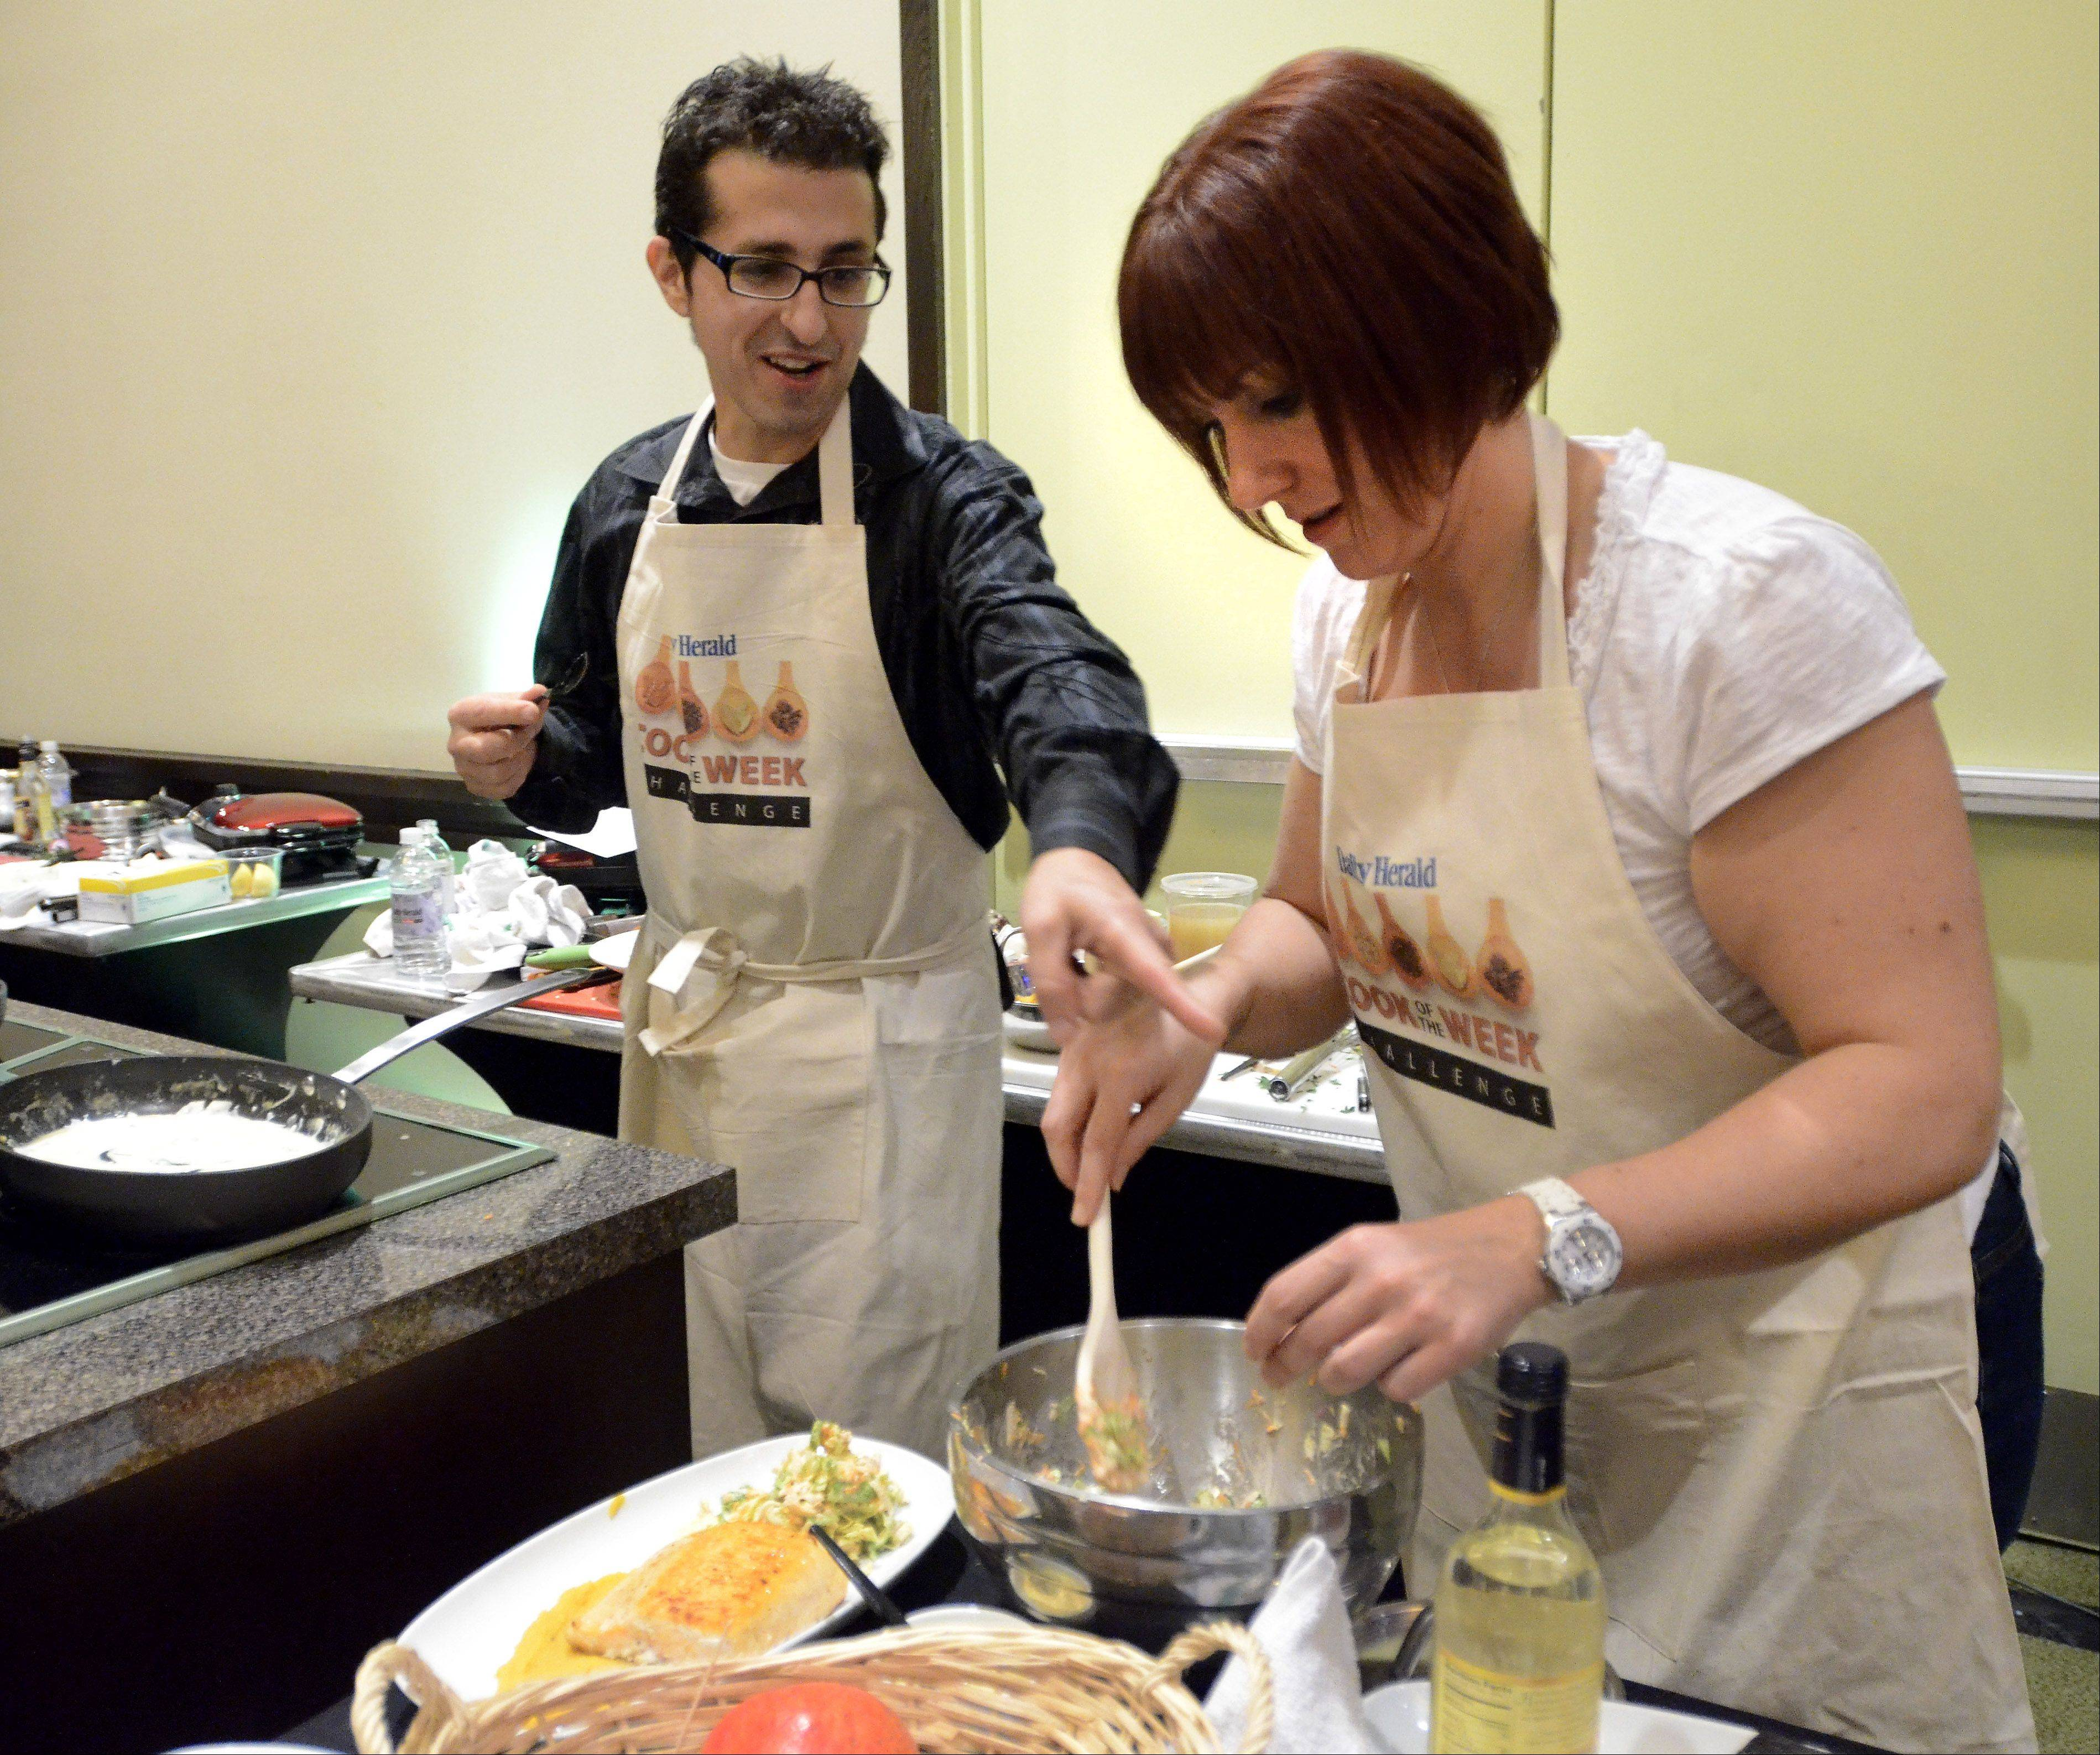 Michael Pennisi gets help from his sister, Mary Samycia, as he prepares his dish during the Cook of the Week Challenge cook-off. A physics teacher from Carpentersville, Pennisi bested 15 other home cooks last year for the title of Daily Herald Cook of the Year.